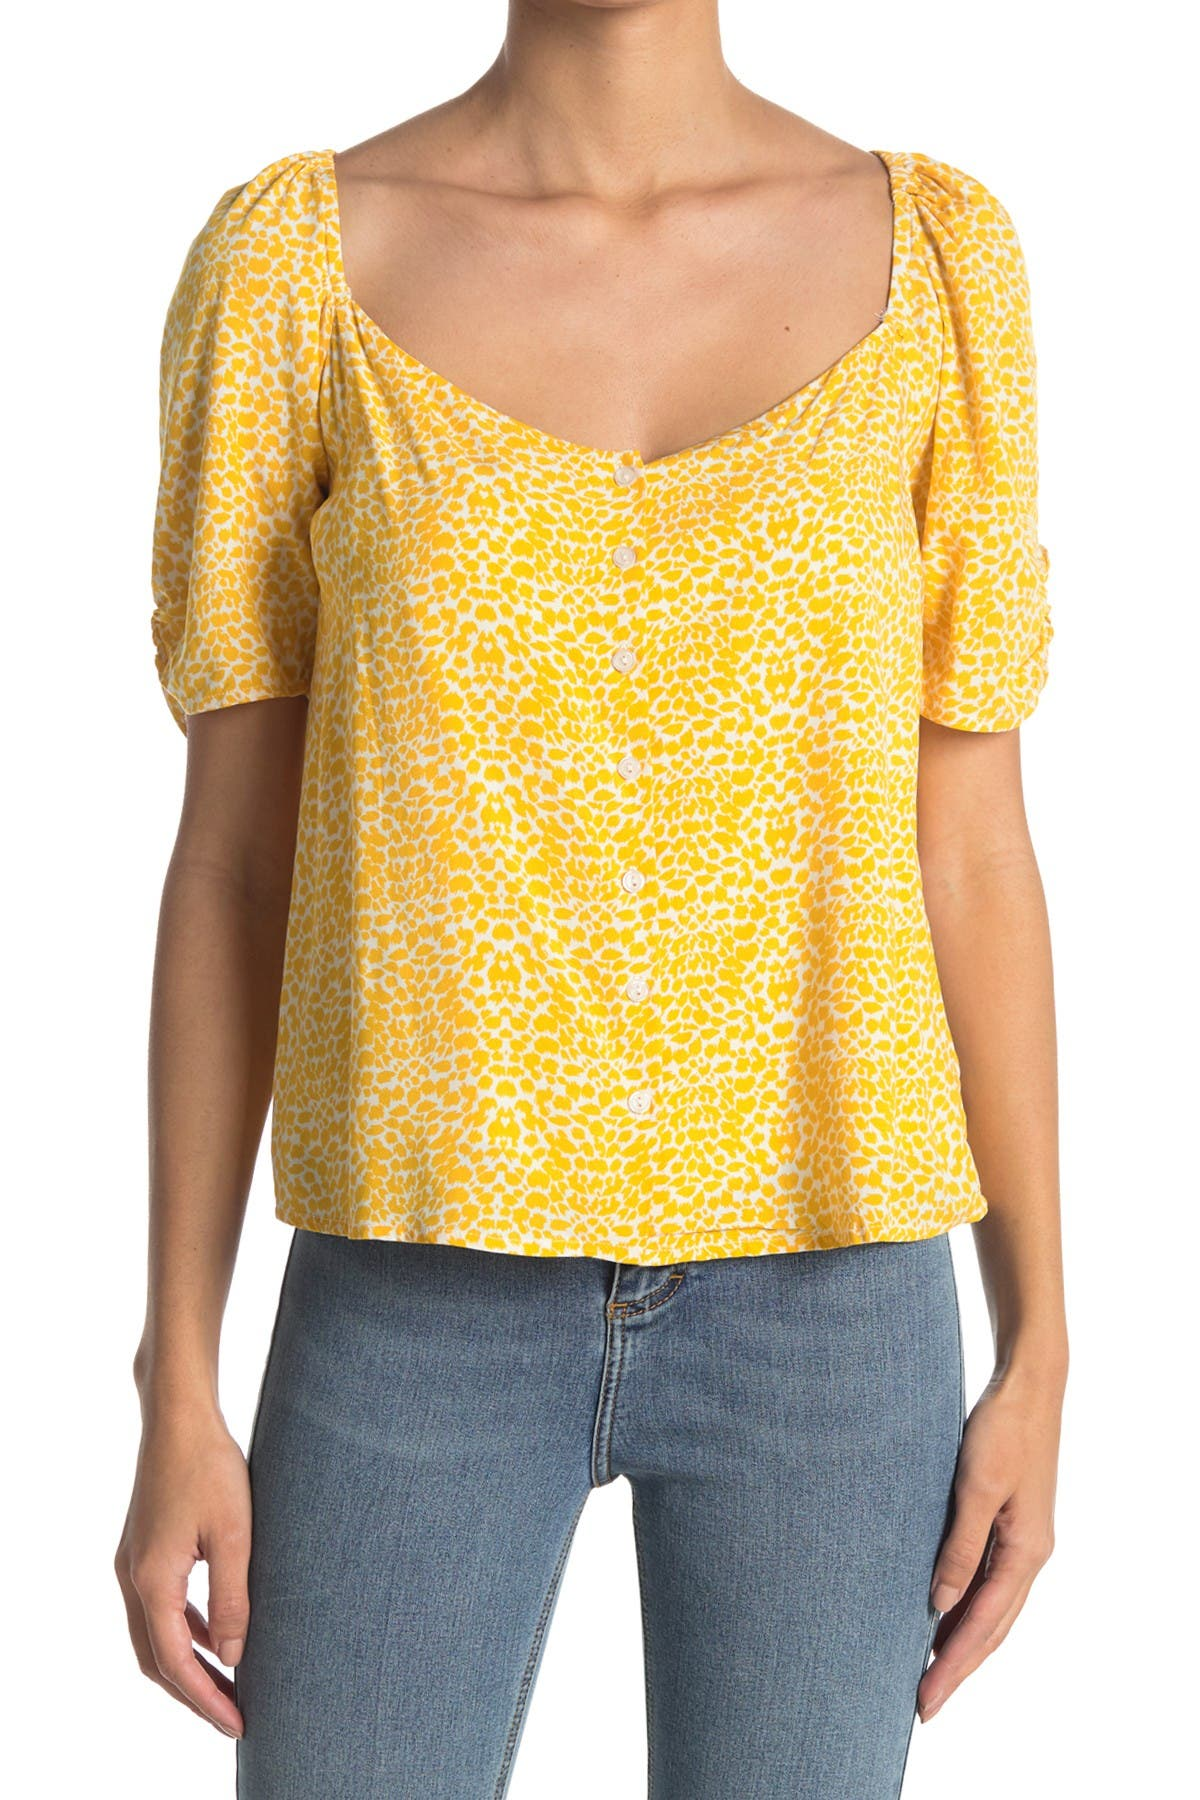 Image of Lush Sweetheart Neck Patterned Top